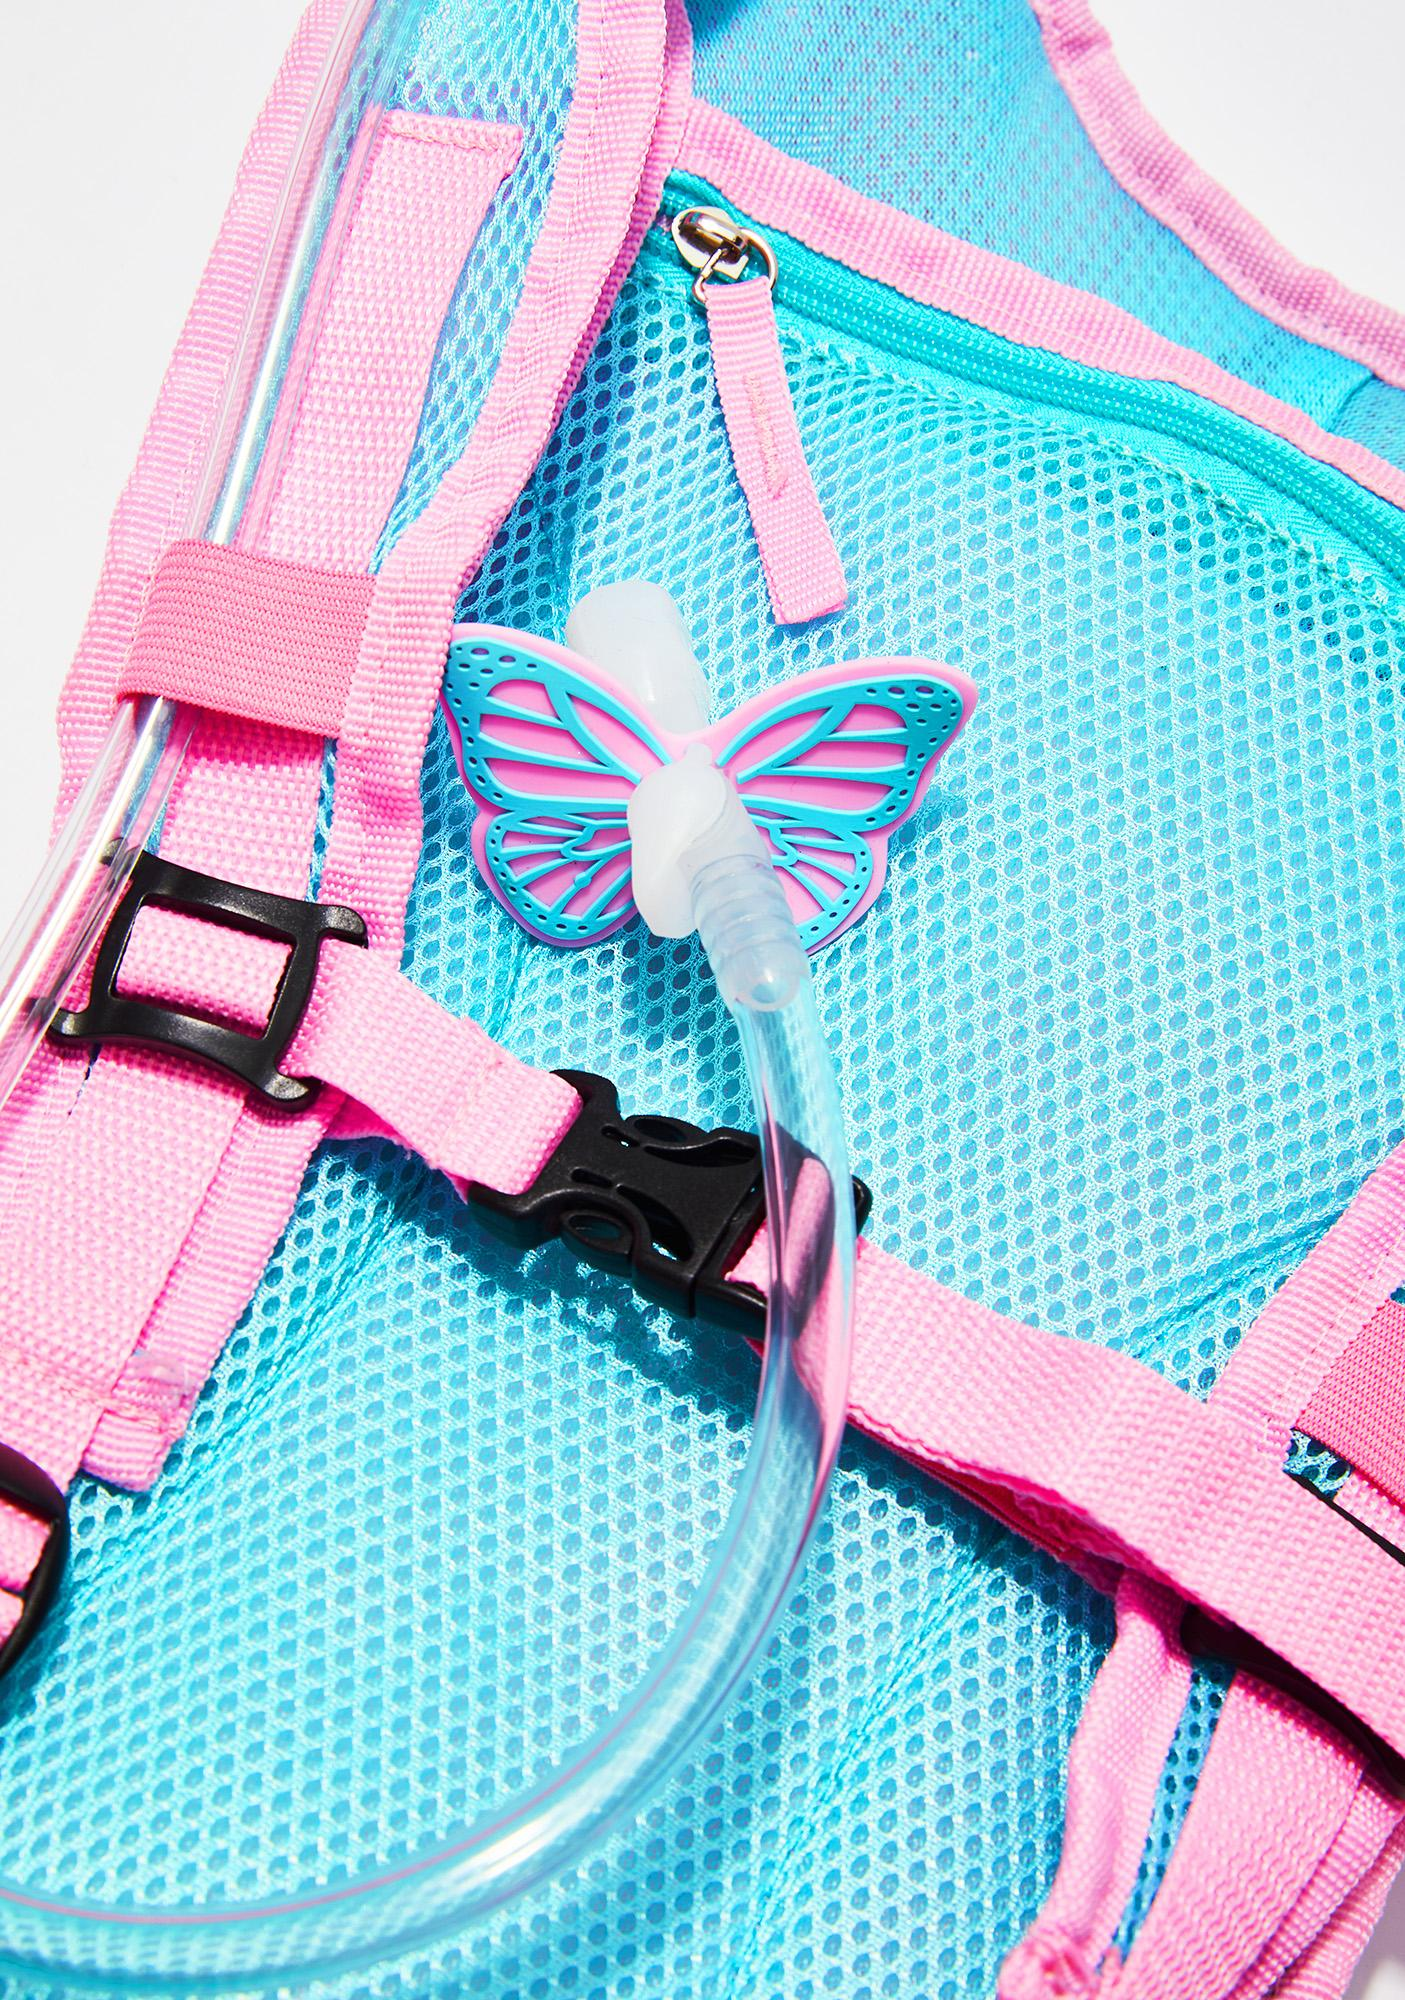 Dan-Pak Cotton Candy Dream Hydration Backpack